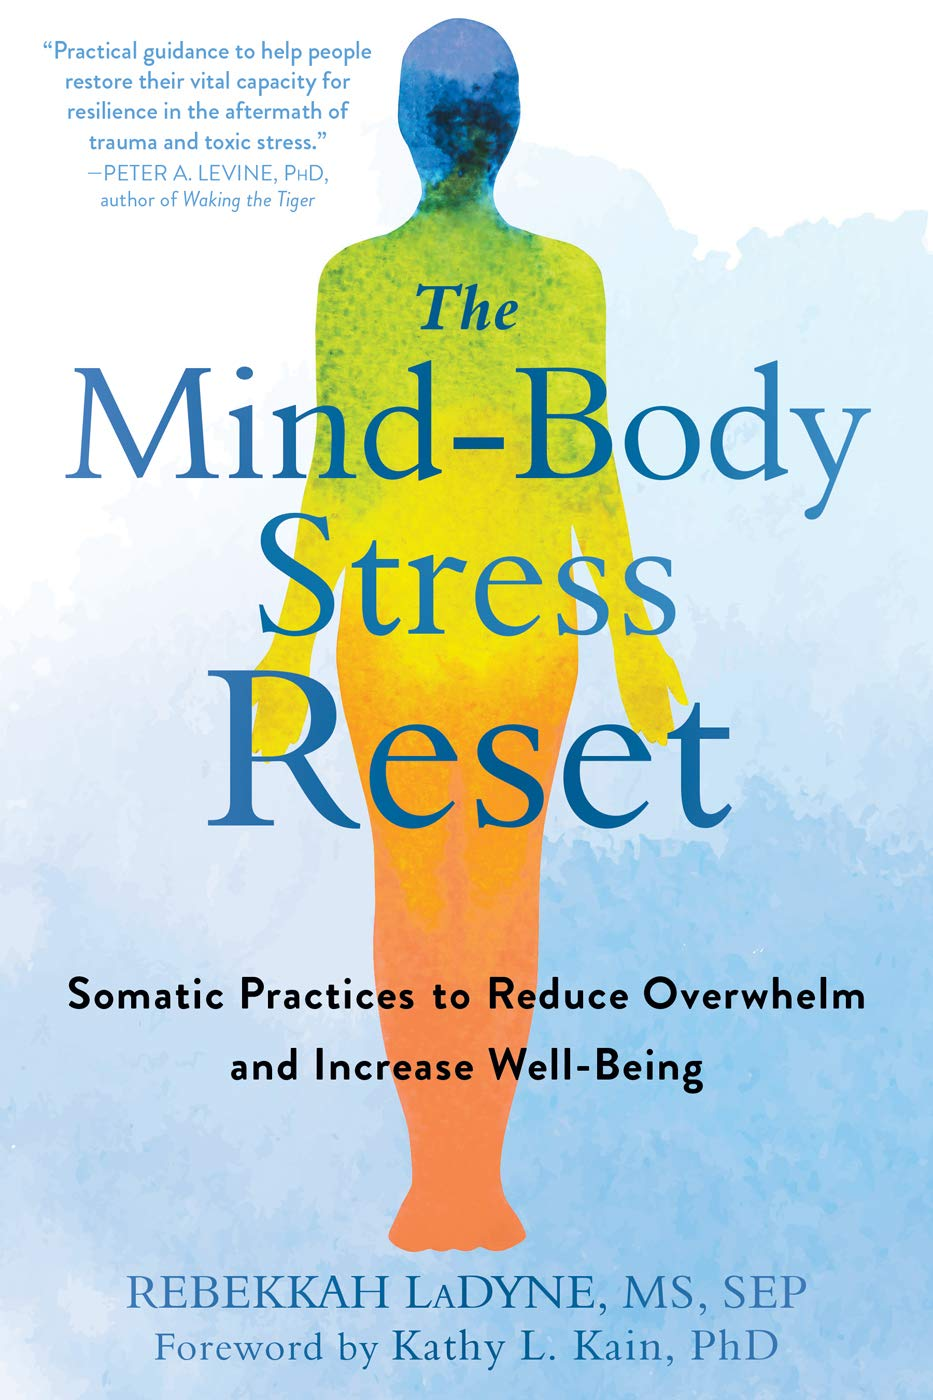 The Mind-Body Stress Reset book cover